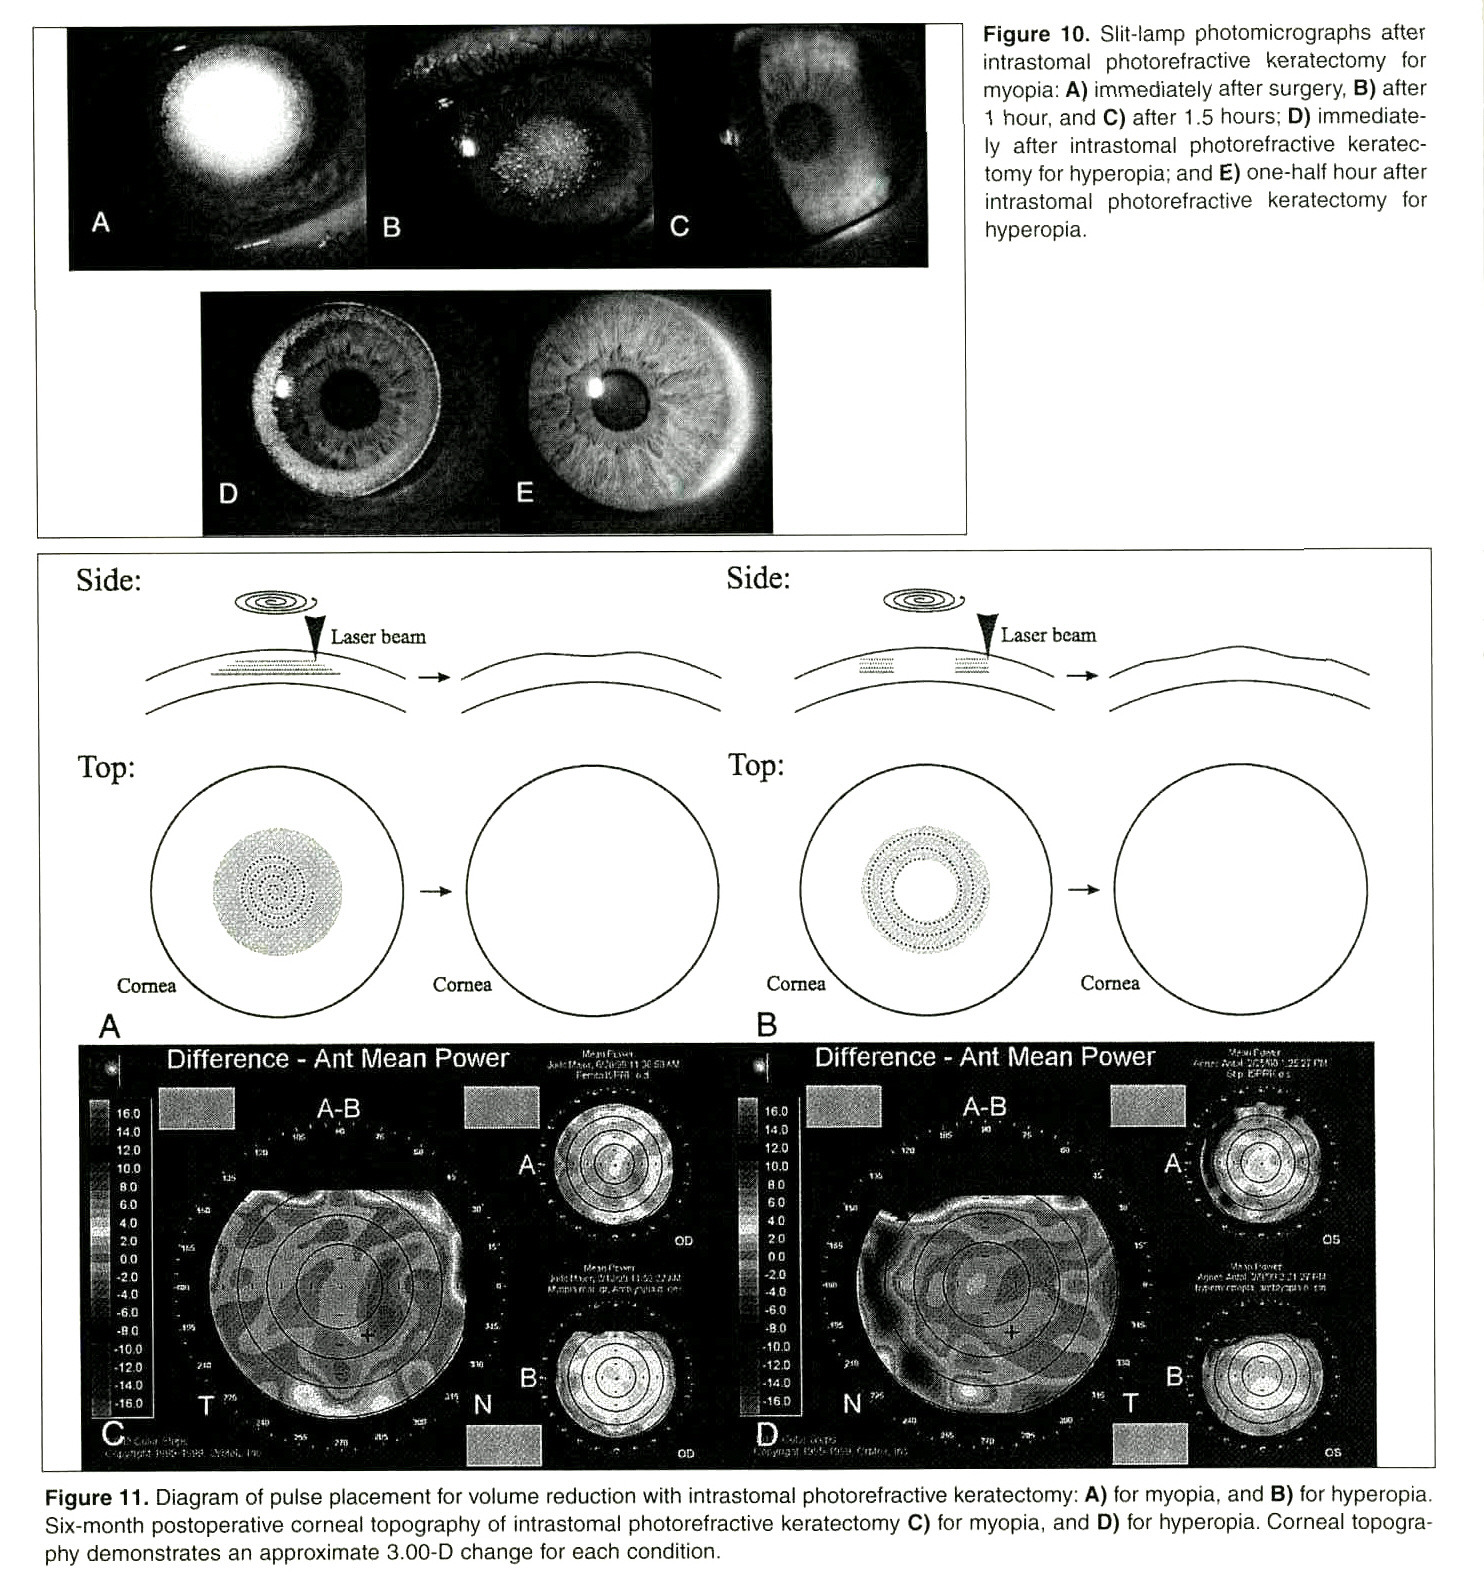 Figure 10. Slit-lamp photomicrographs after intrastomal photorefractive keratectomy for myopia: A) immediately after surgery, B) after 1 hour, and C) after 1 .5 hours; D) immediately after intrastomal photorefractive keratectomy for hyperopia; and E) one-half hour after intrastomal photorefractive keratectomy for hyperopia.Figure 11. Diagram of pulse placement for volume reduction with intrastomal photorefractive keratectomy; A) for myopia, and B) for hyperopia. Six-month postoperative corneal topography of intrastomal photorefractive keratectomy C) for myopia, and D) for hyperopia. Corneal topography demonstrates an approximate 3.00-D change for each condition.